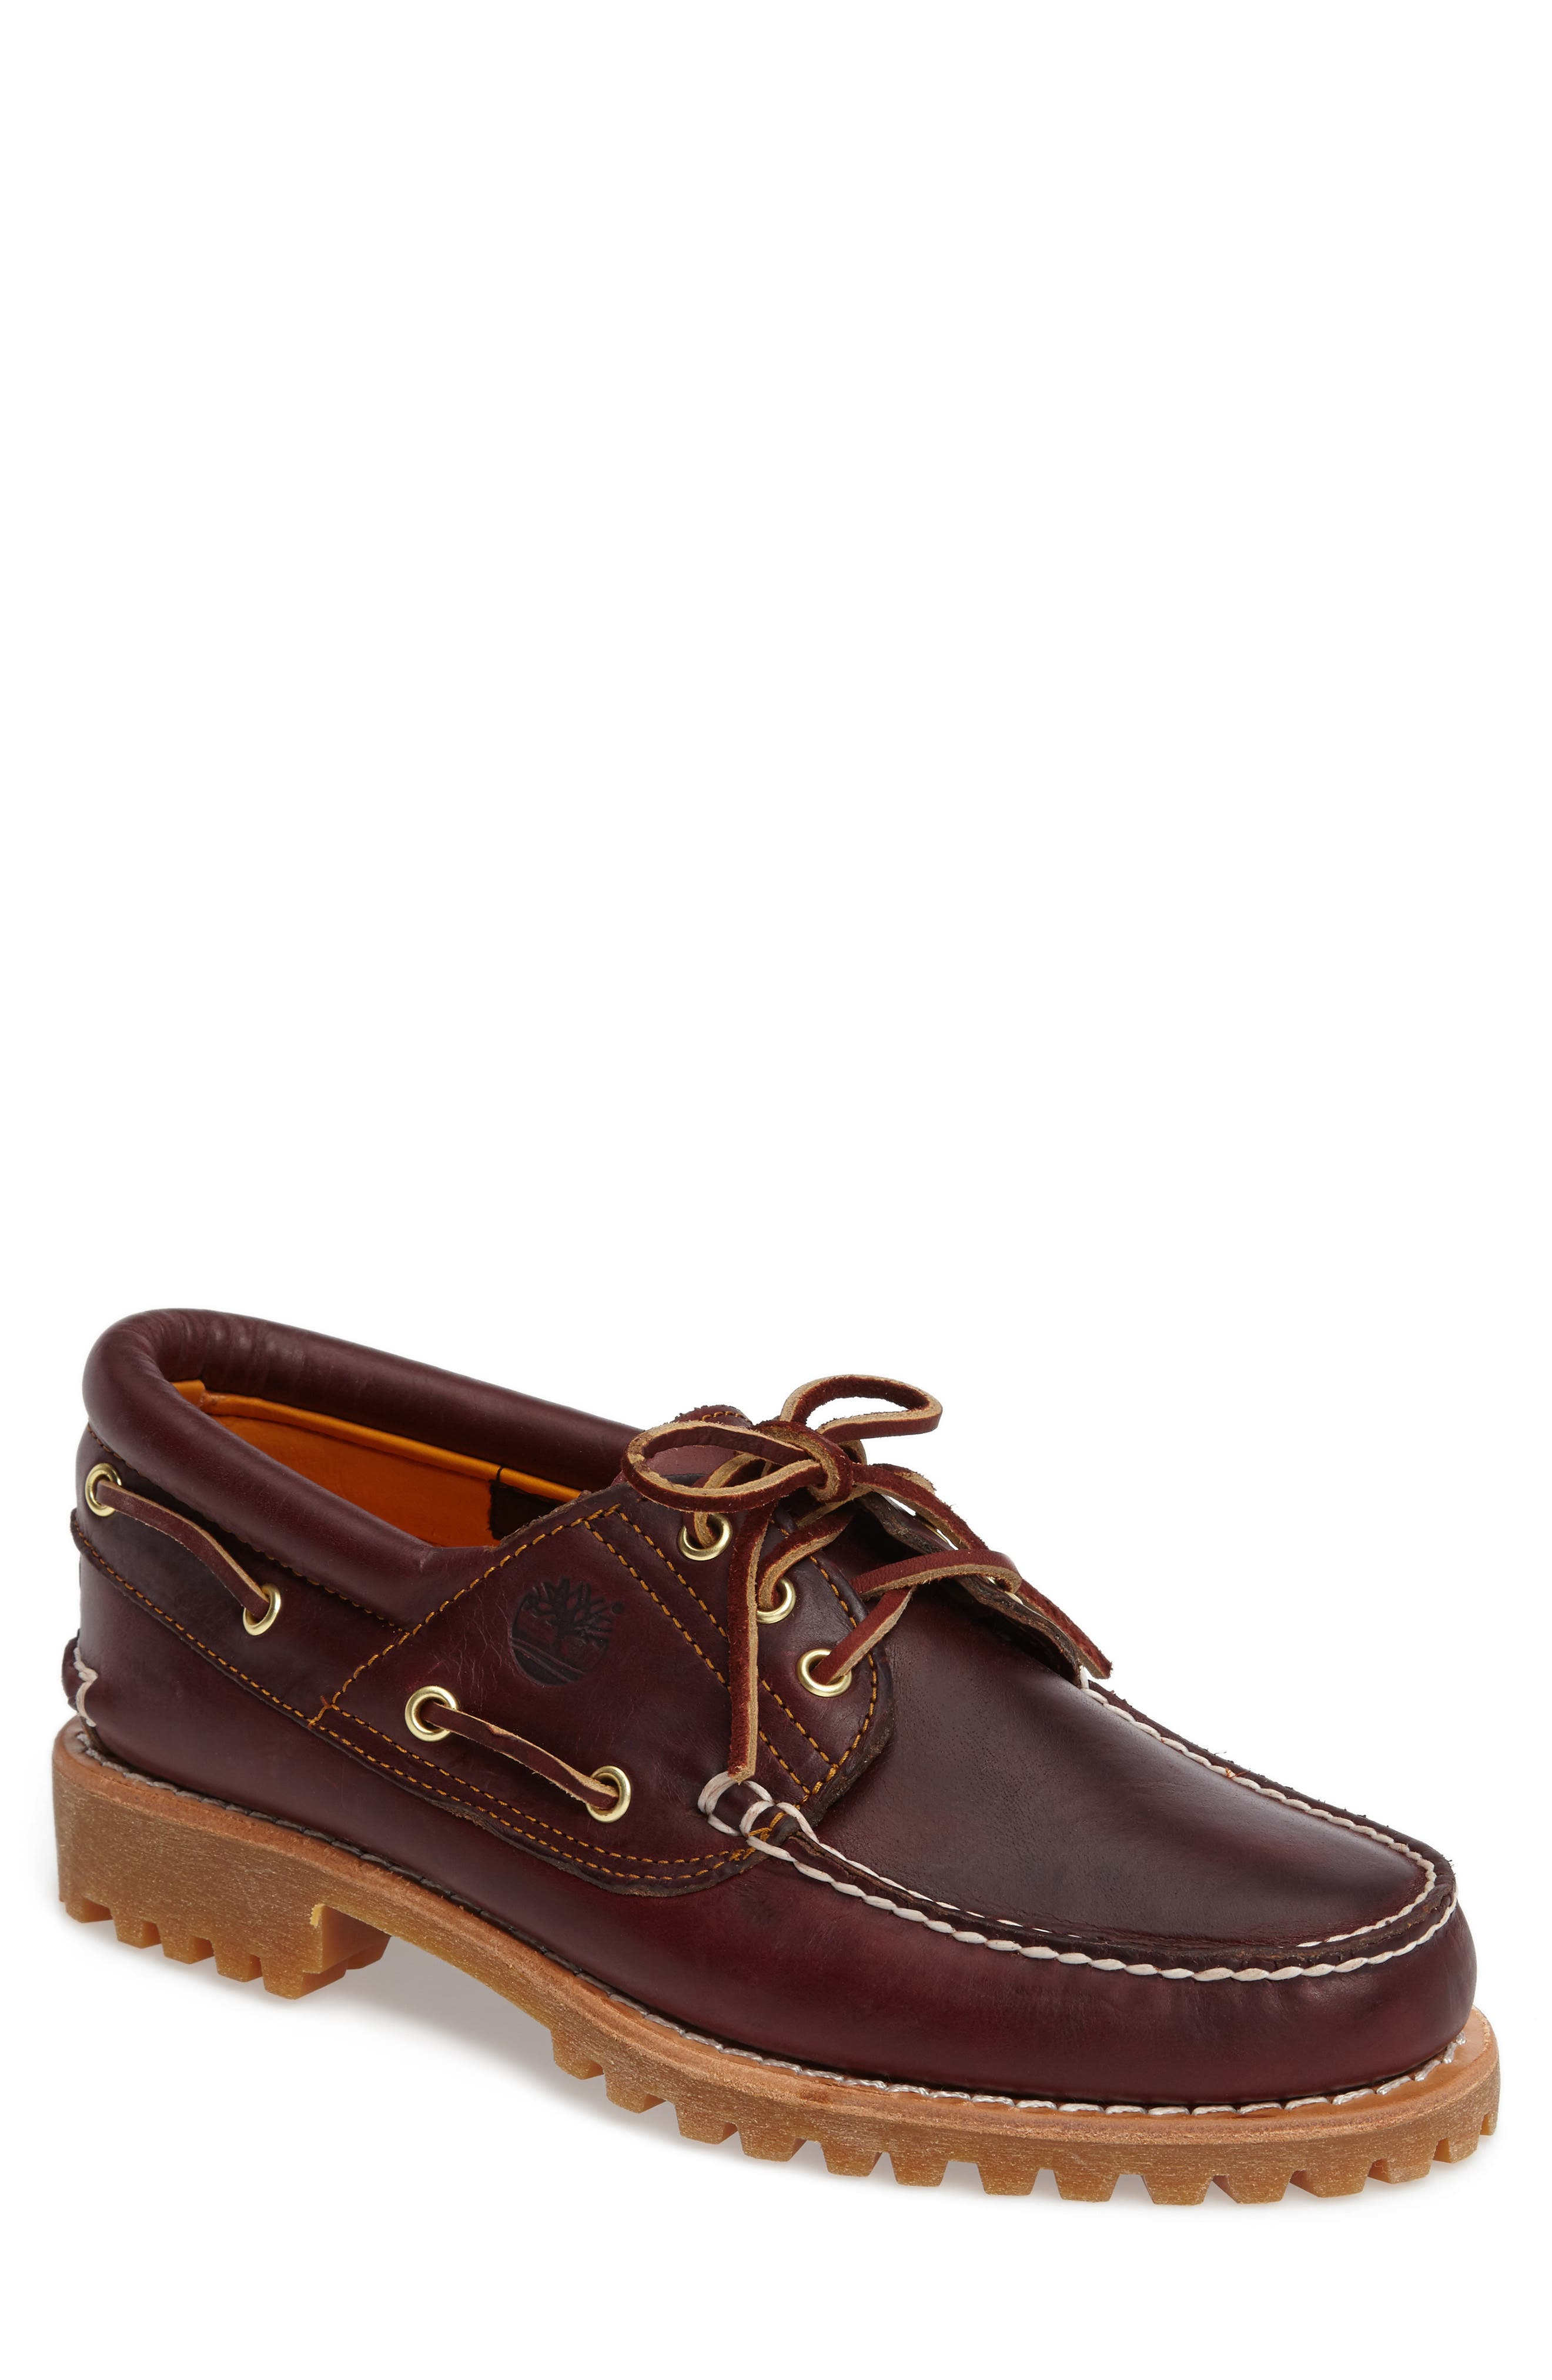 Alternate Image 1 Selected - Timberland Authentic Boat Shoe (Men)